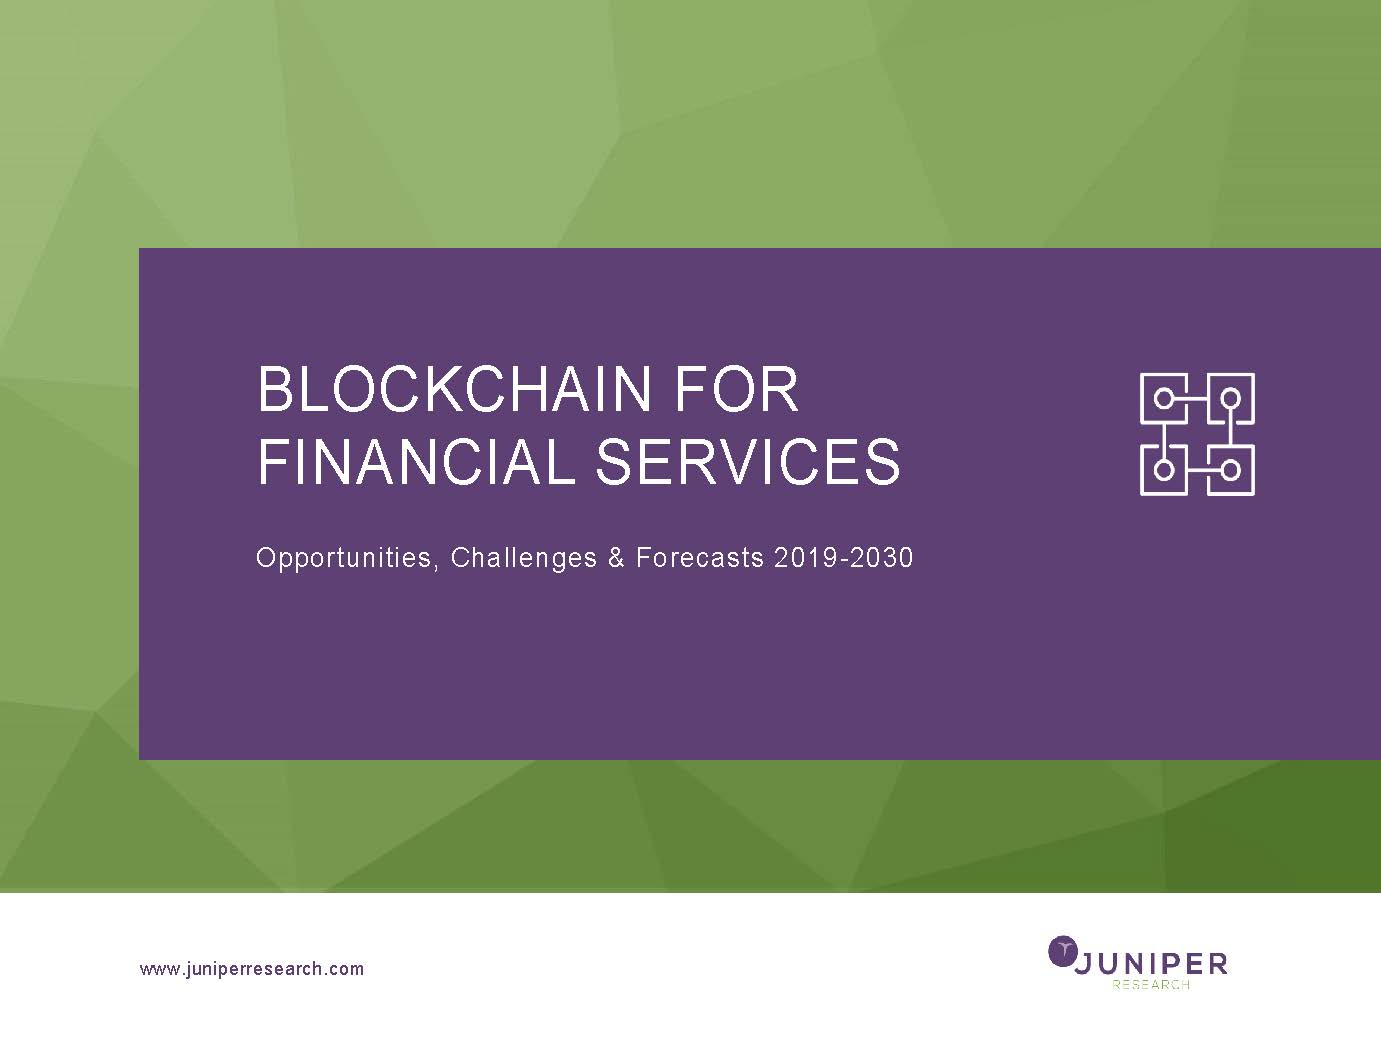 Blockchain for Financial Services